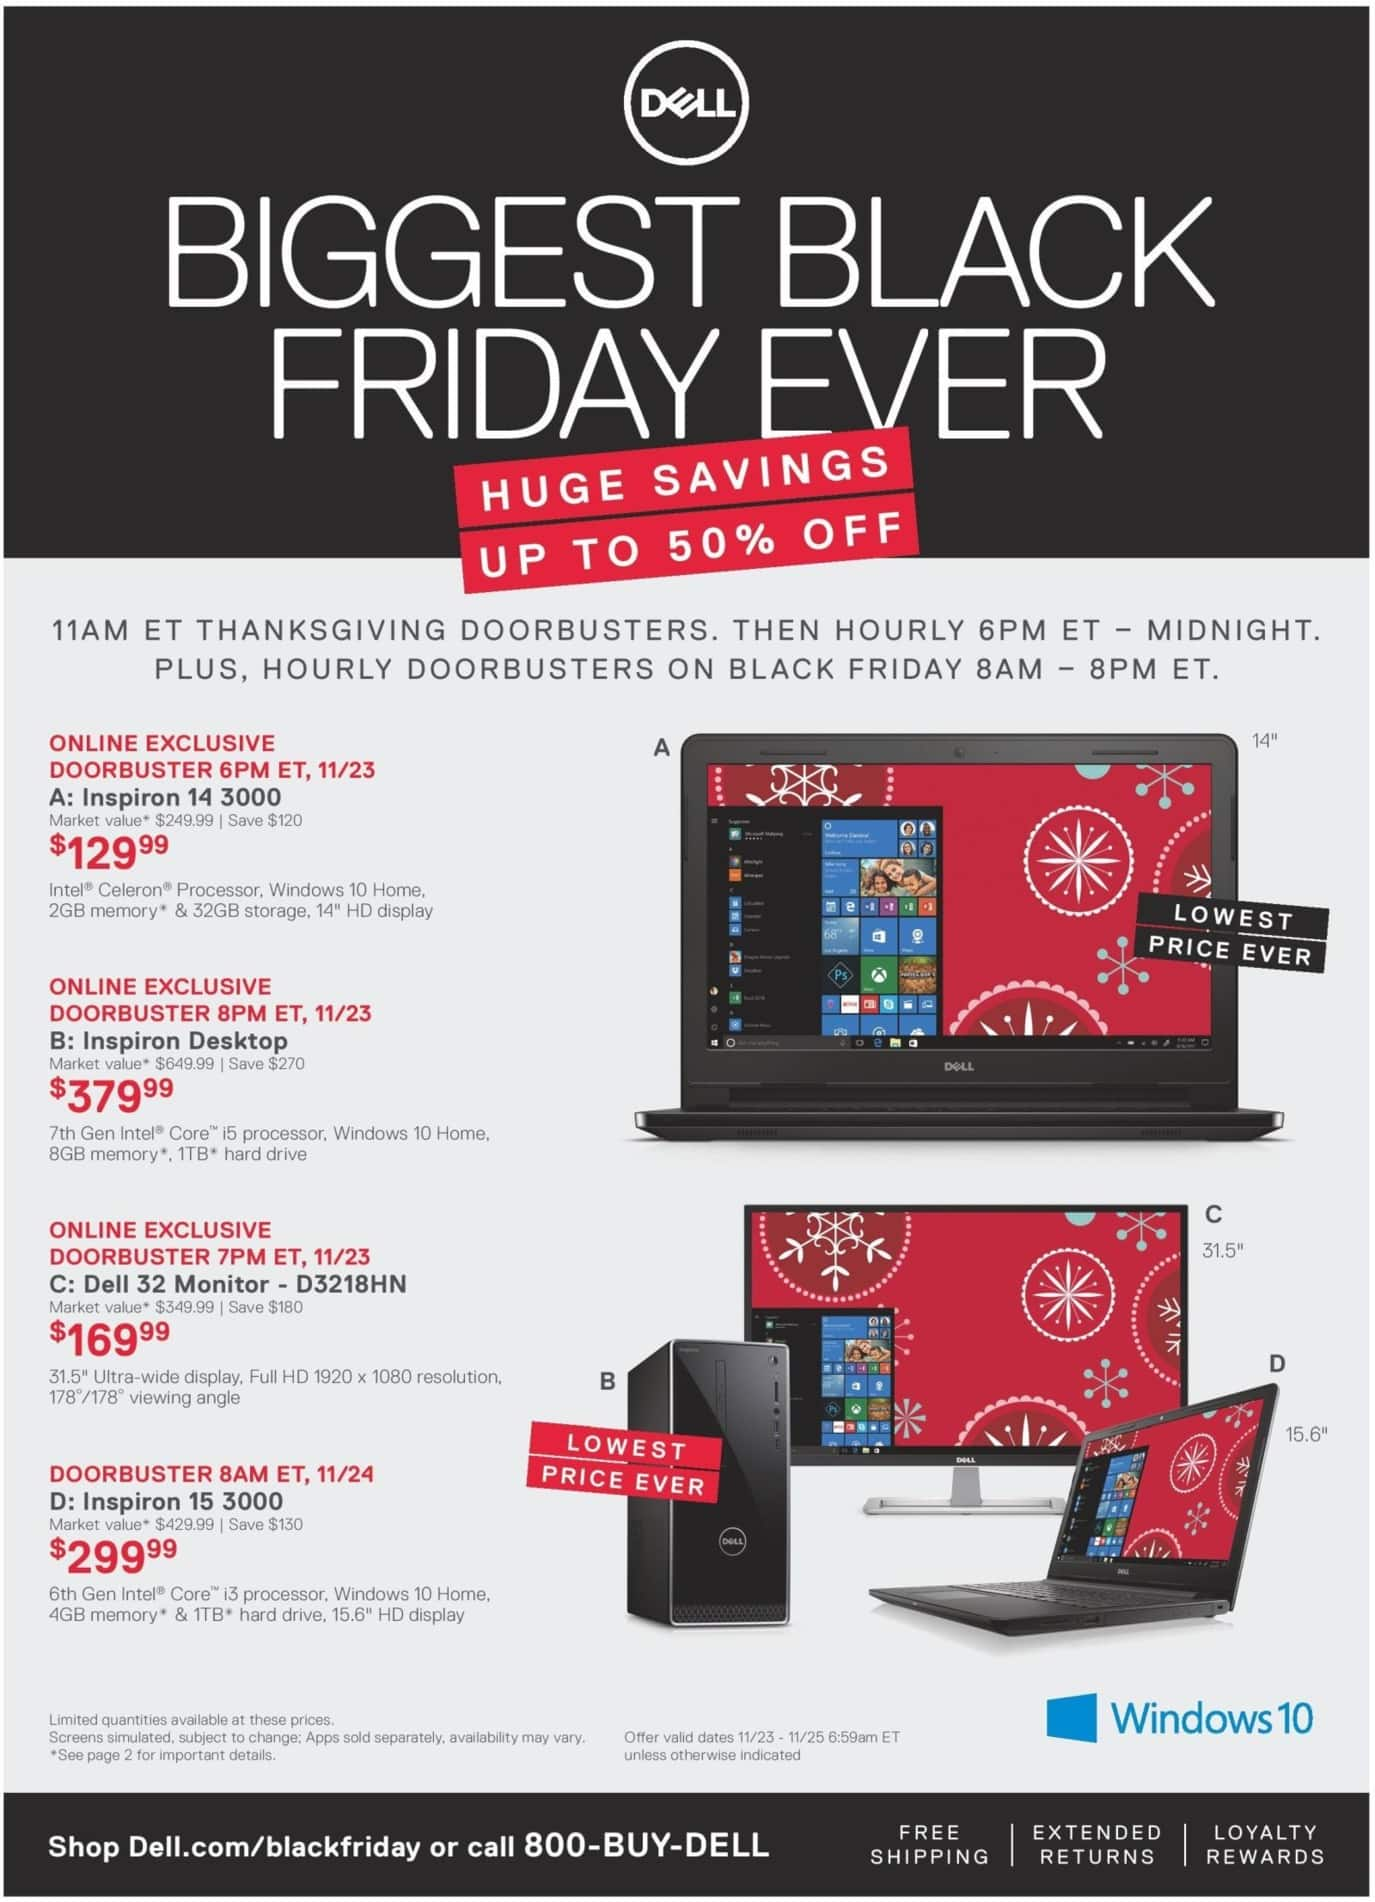 Dell Home & Office Black Friday 2017 Ad Scans | Slickdeals